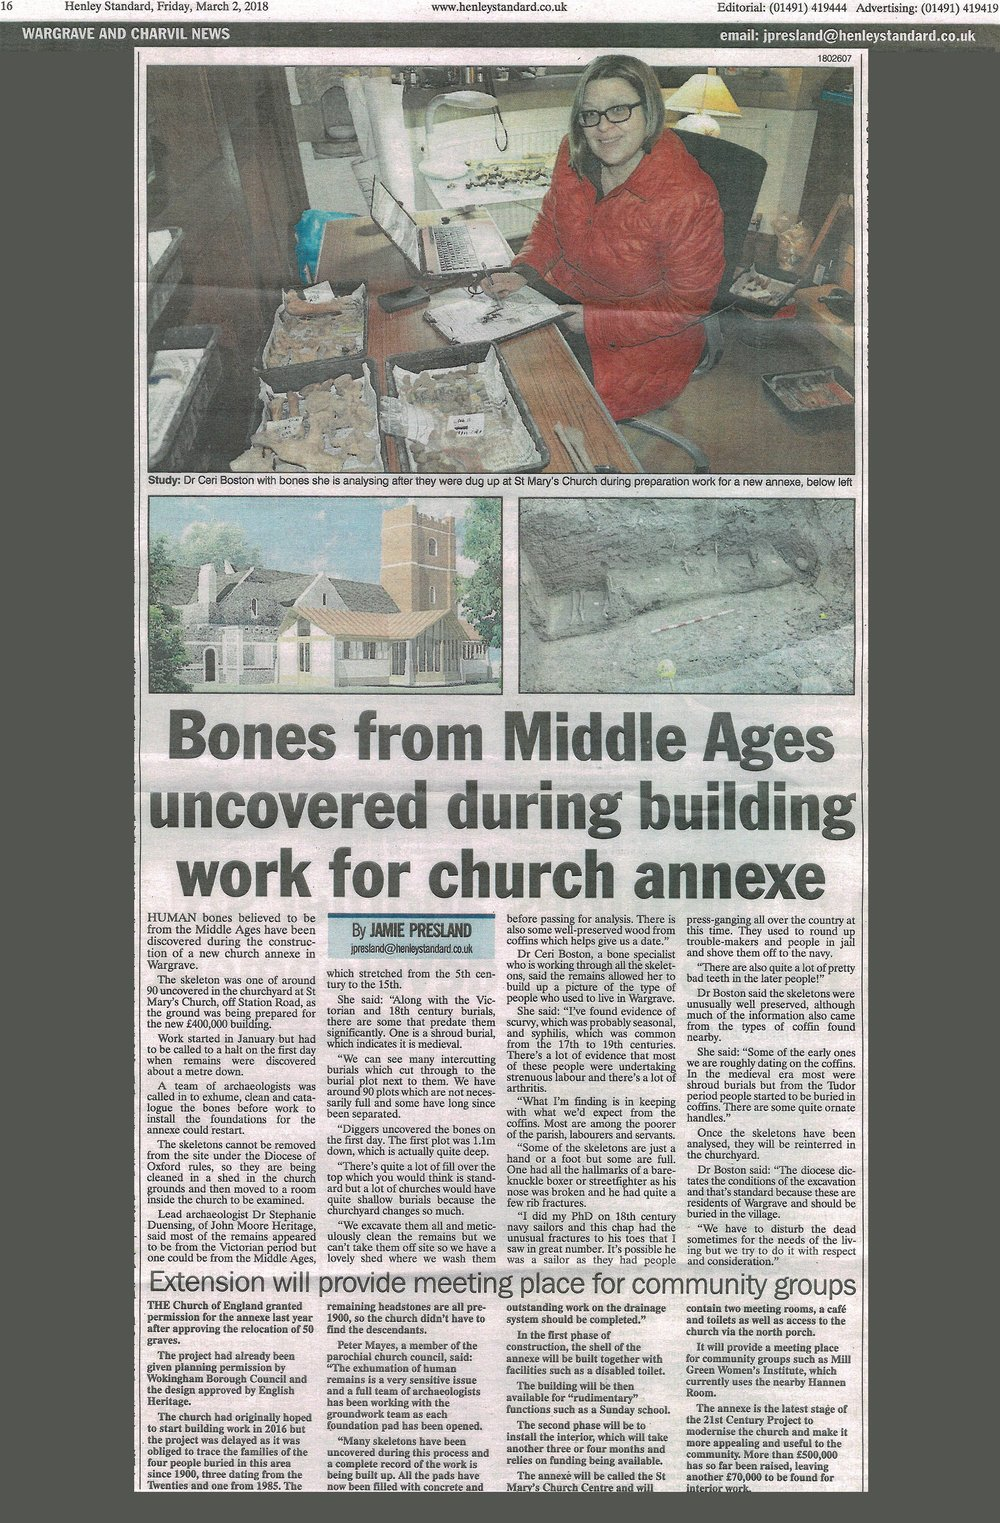 Above: Printed article clipping from the Henley Standard, 2 March 2018.